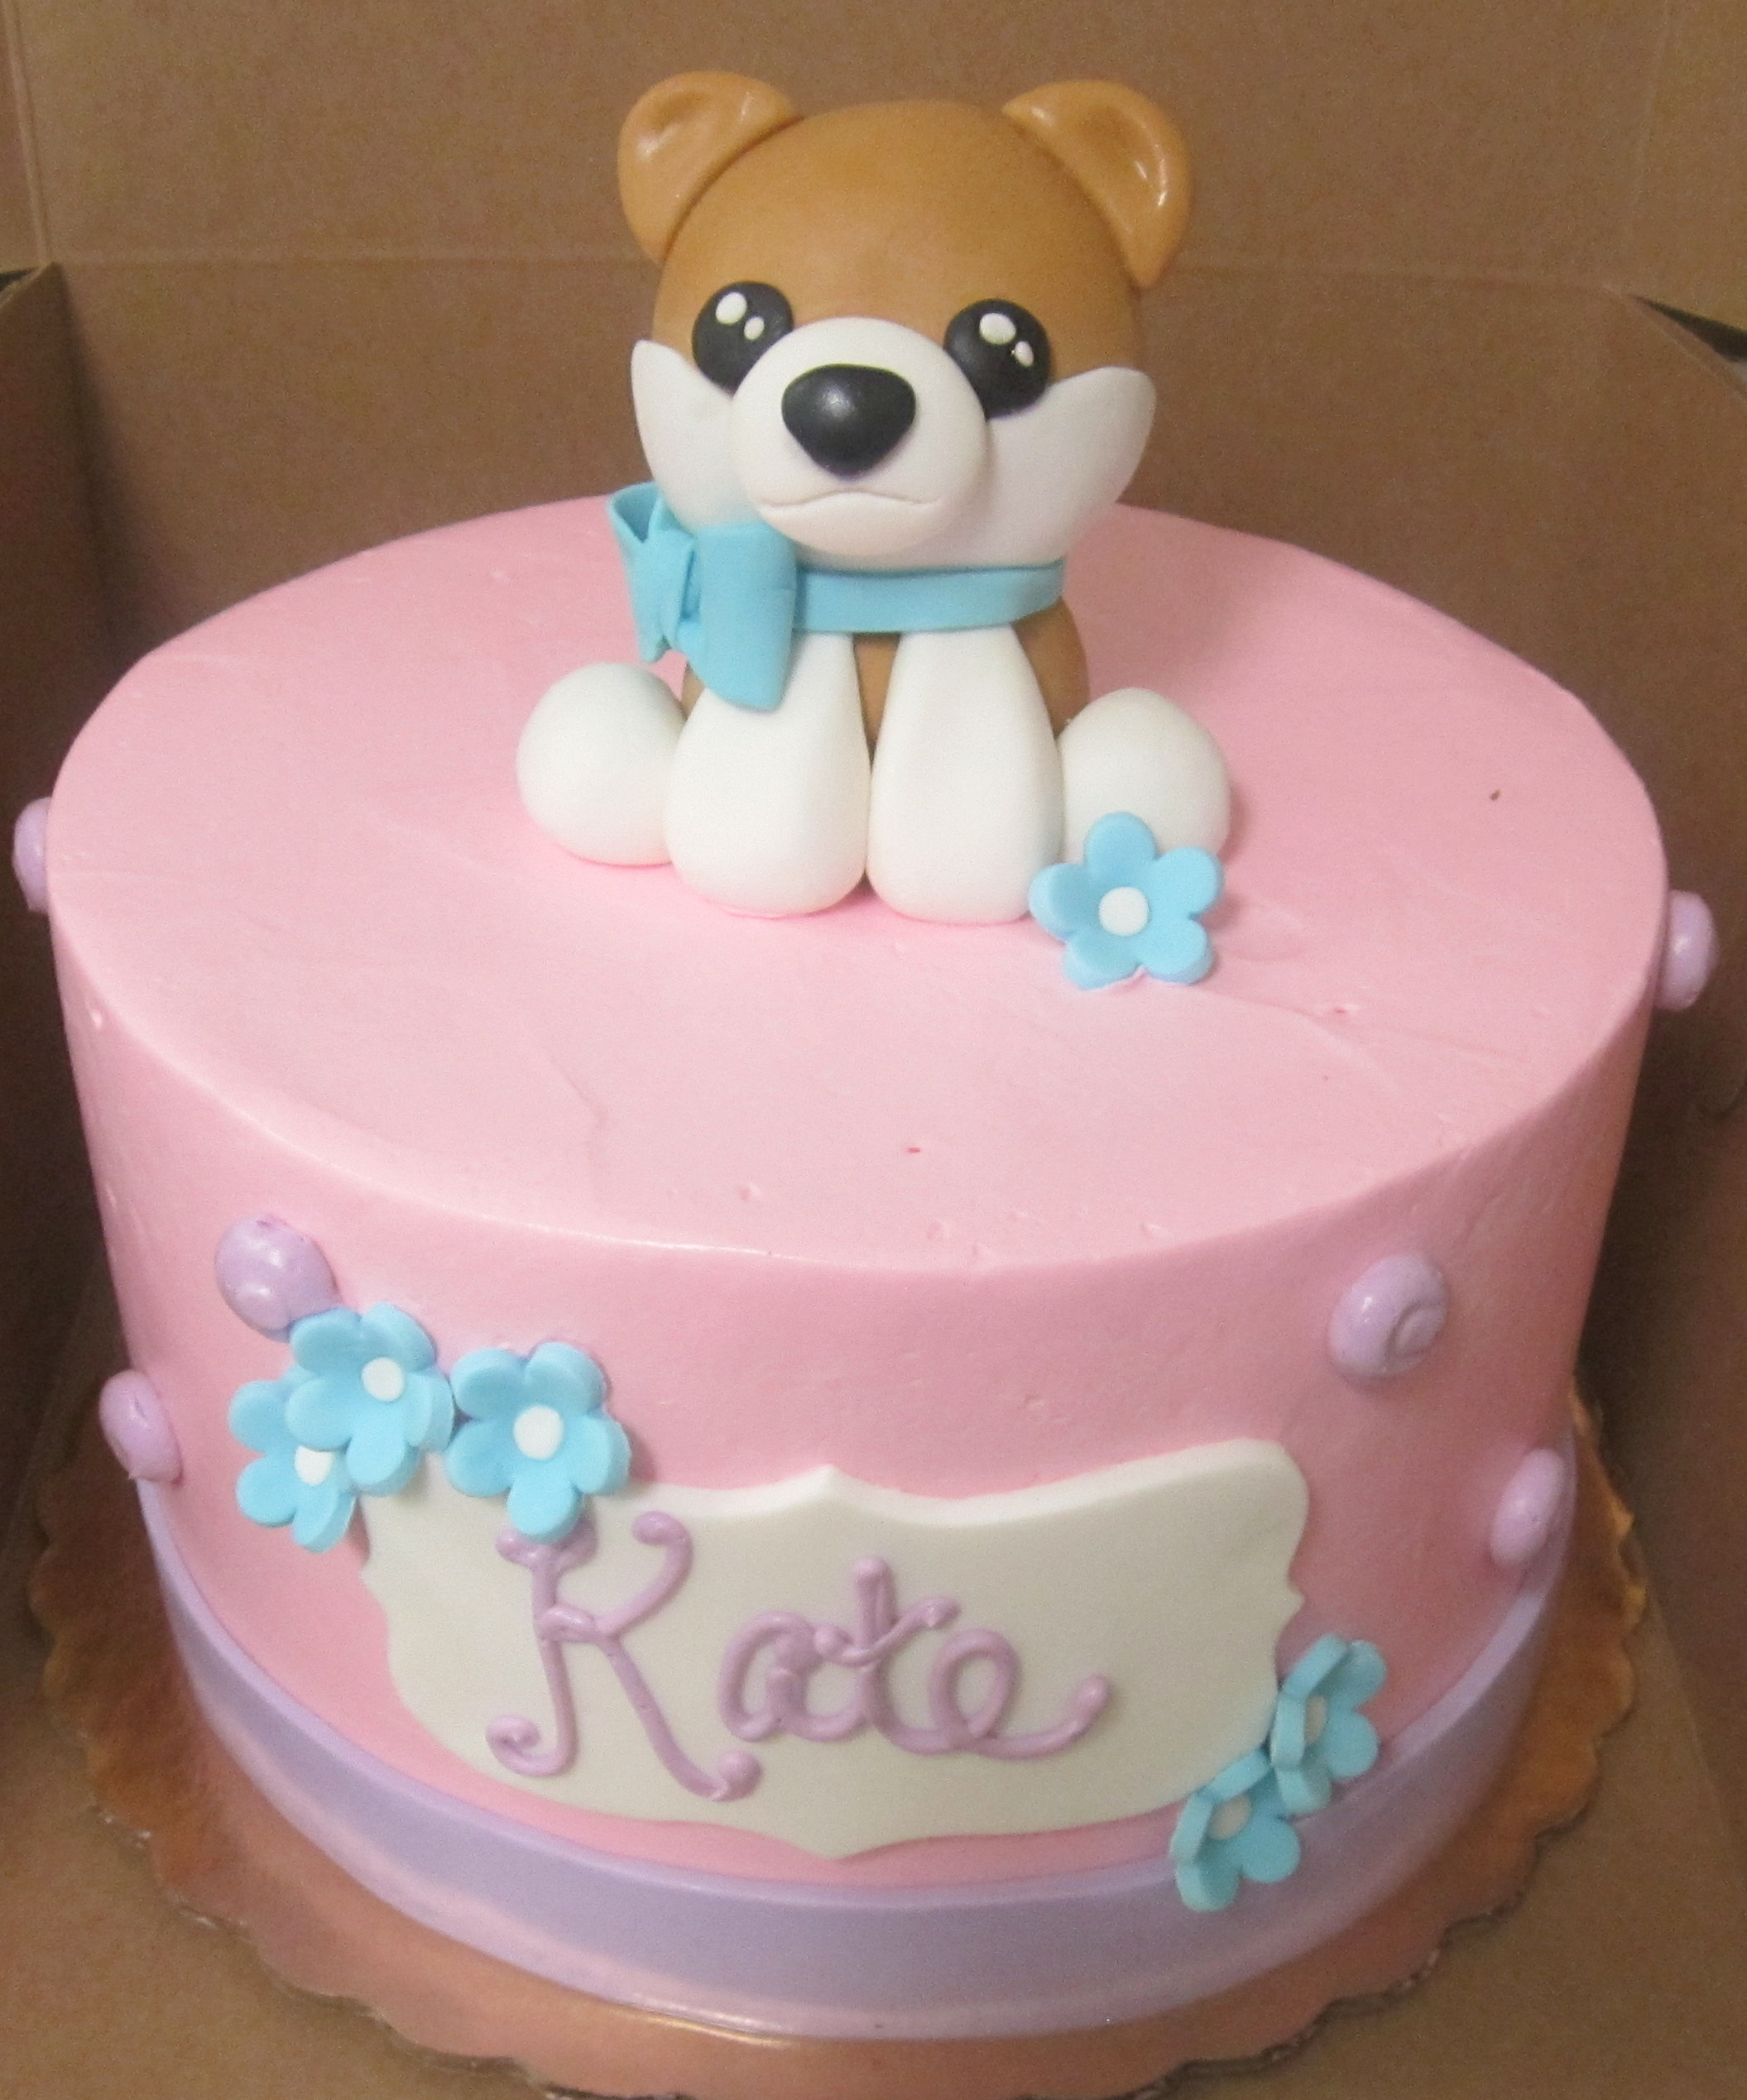 puppy on pink cake with plaque.jpg